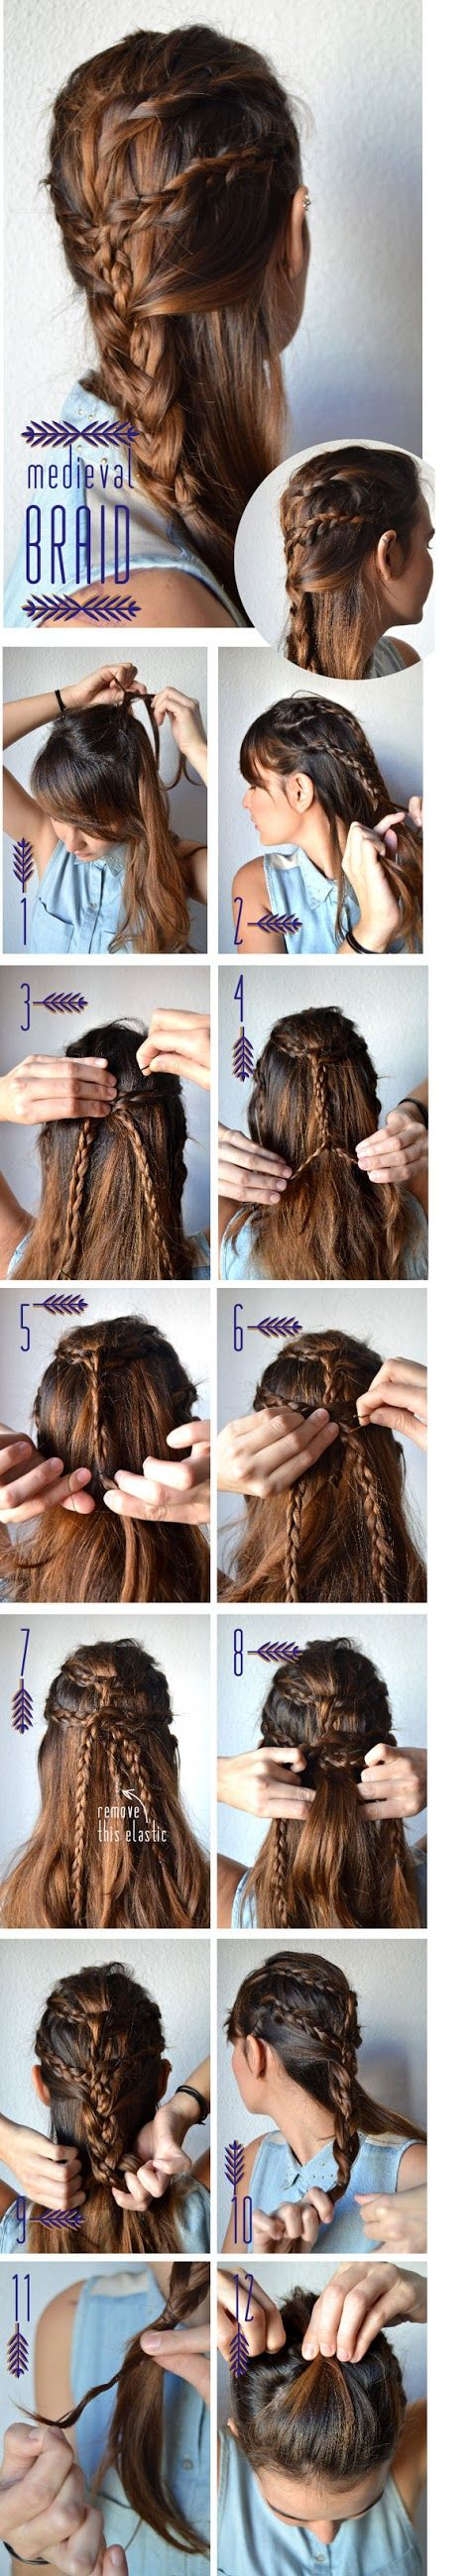 Make a Medieval Braid For Your Hair. Perfect for the Renaissance Festival!!!!